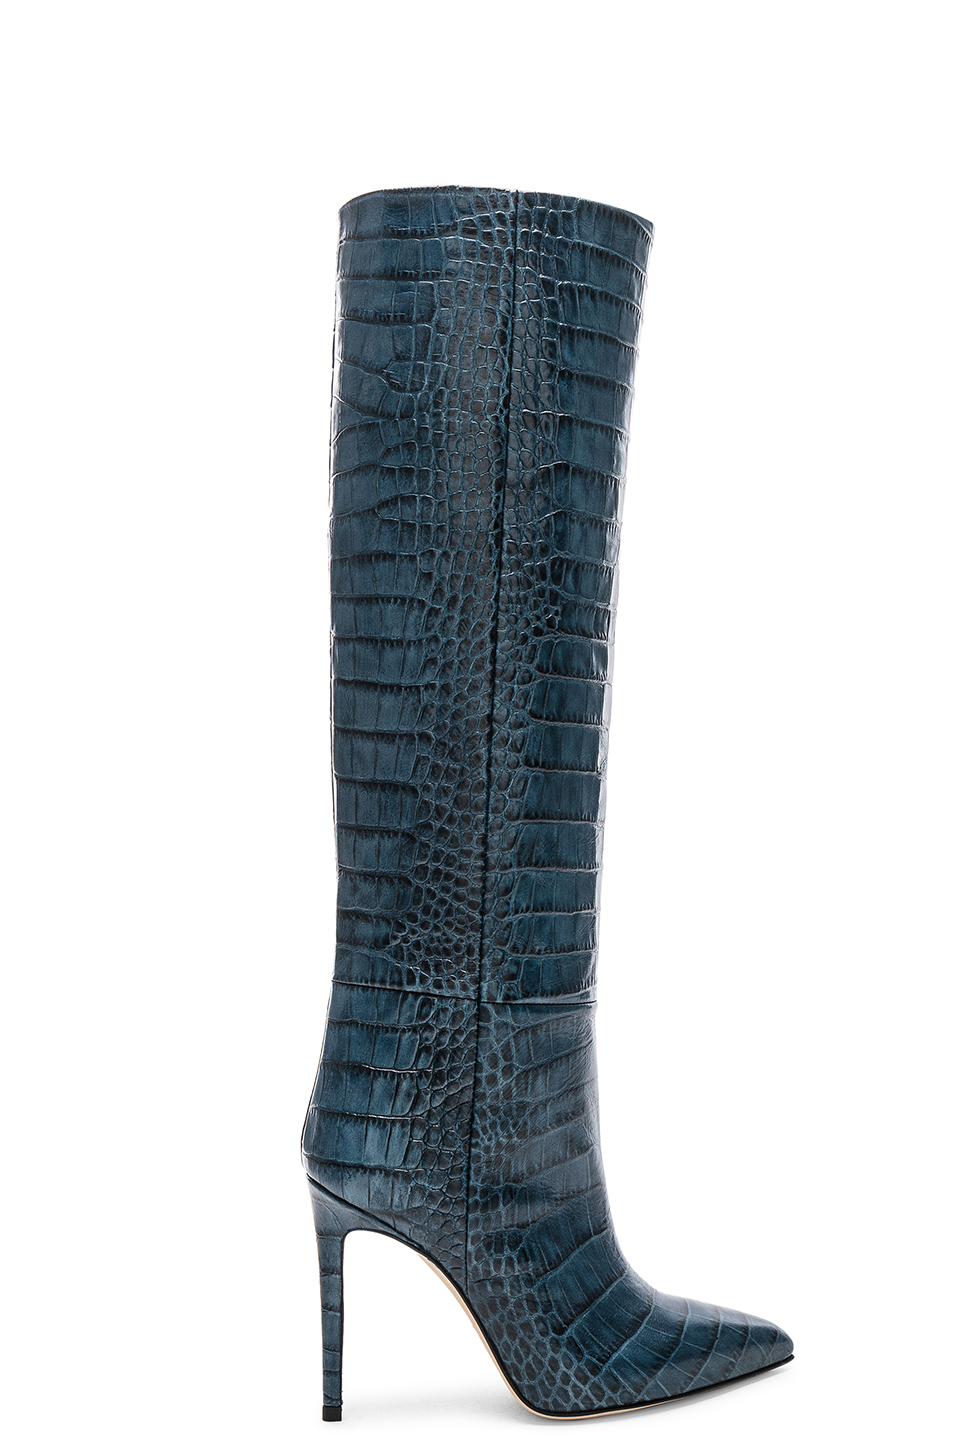 Stiletto Knee High Boot by Paris Texas, available on fwrd.com for $705 Kendall Jenner Shoes Exact Product